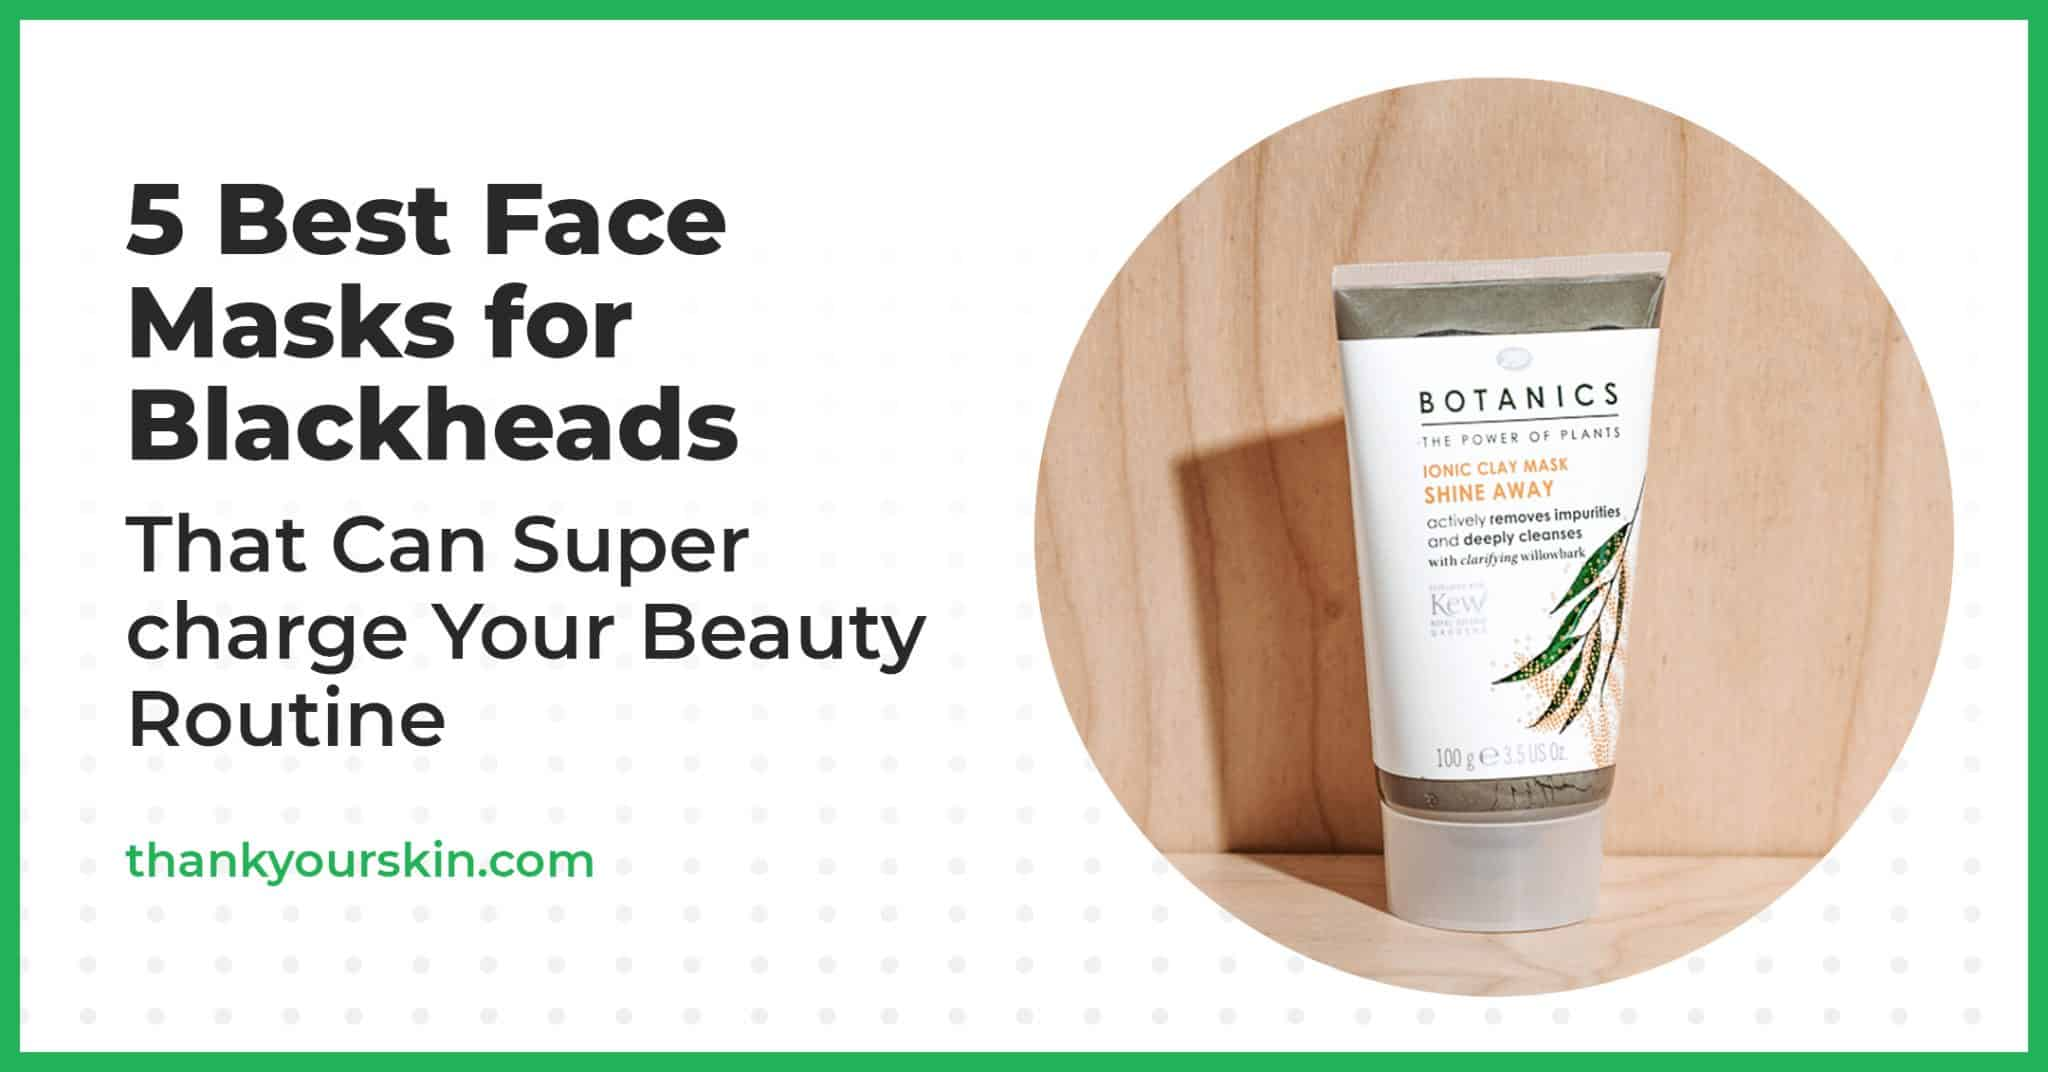 5 Best Face Masks for Blackheads That Can Supercharge Your Beauty Routine